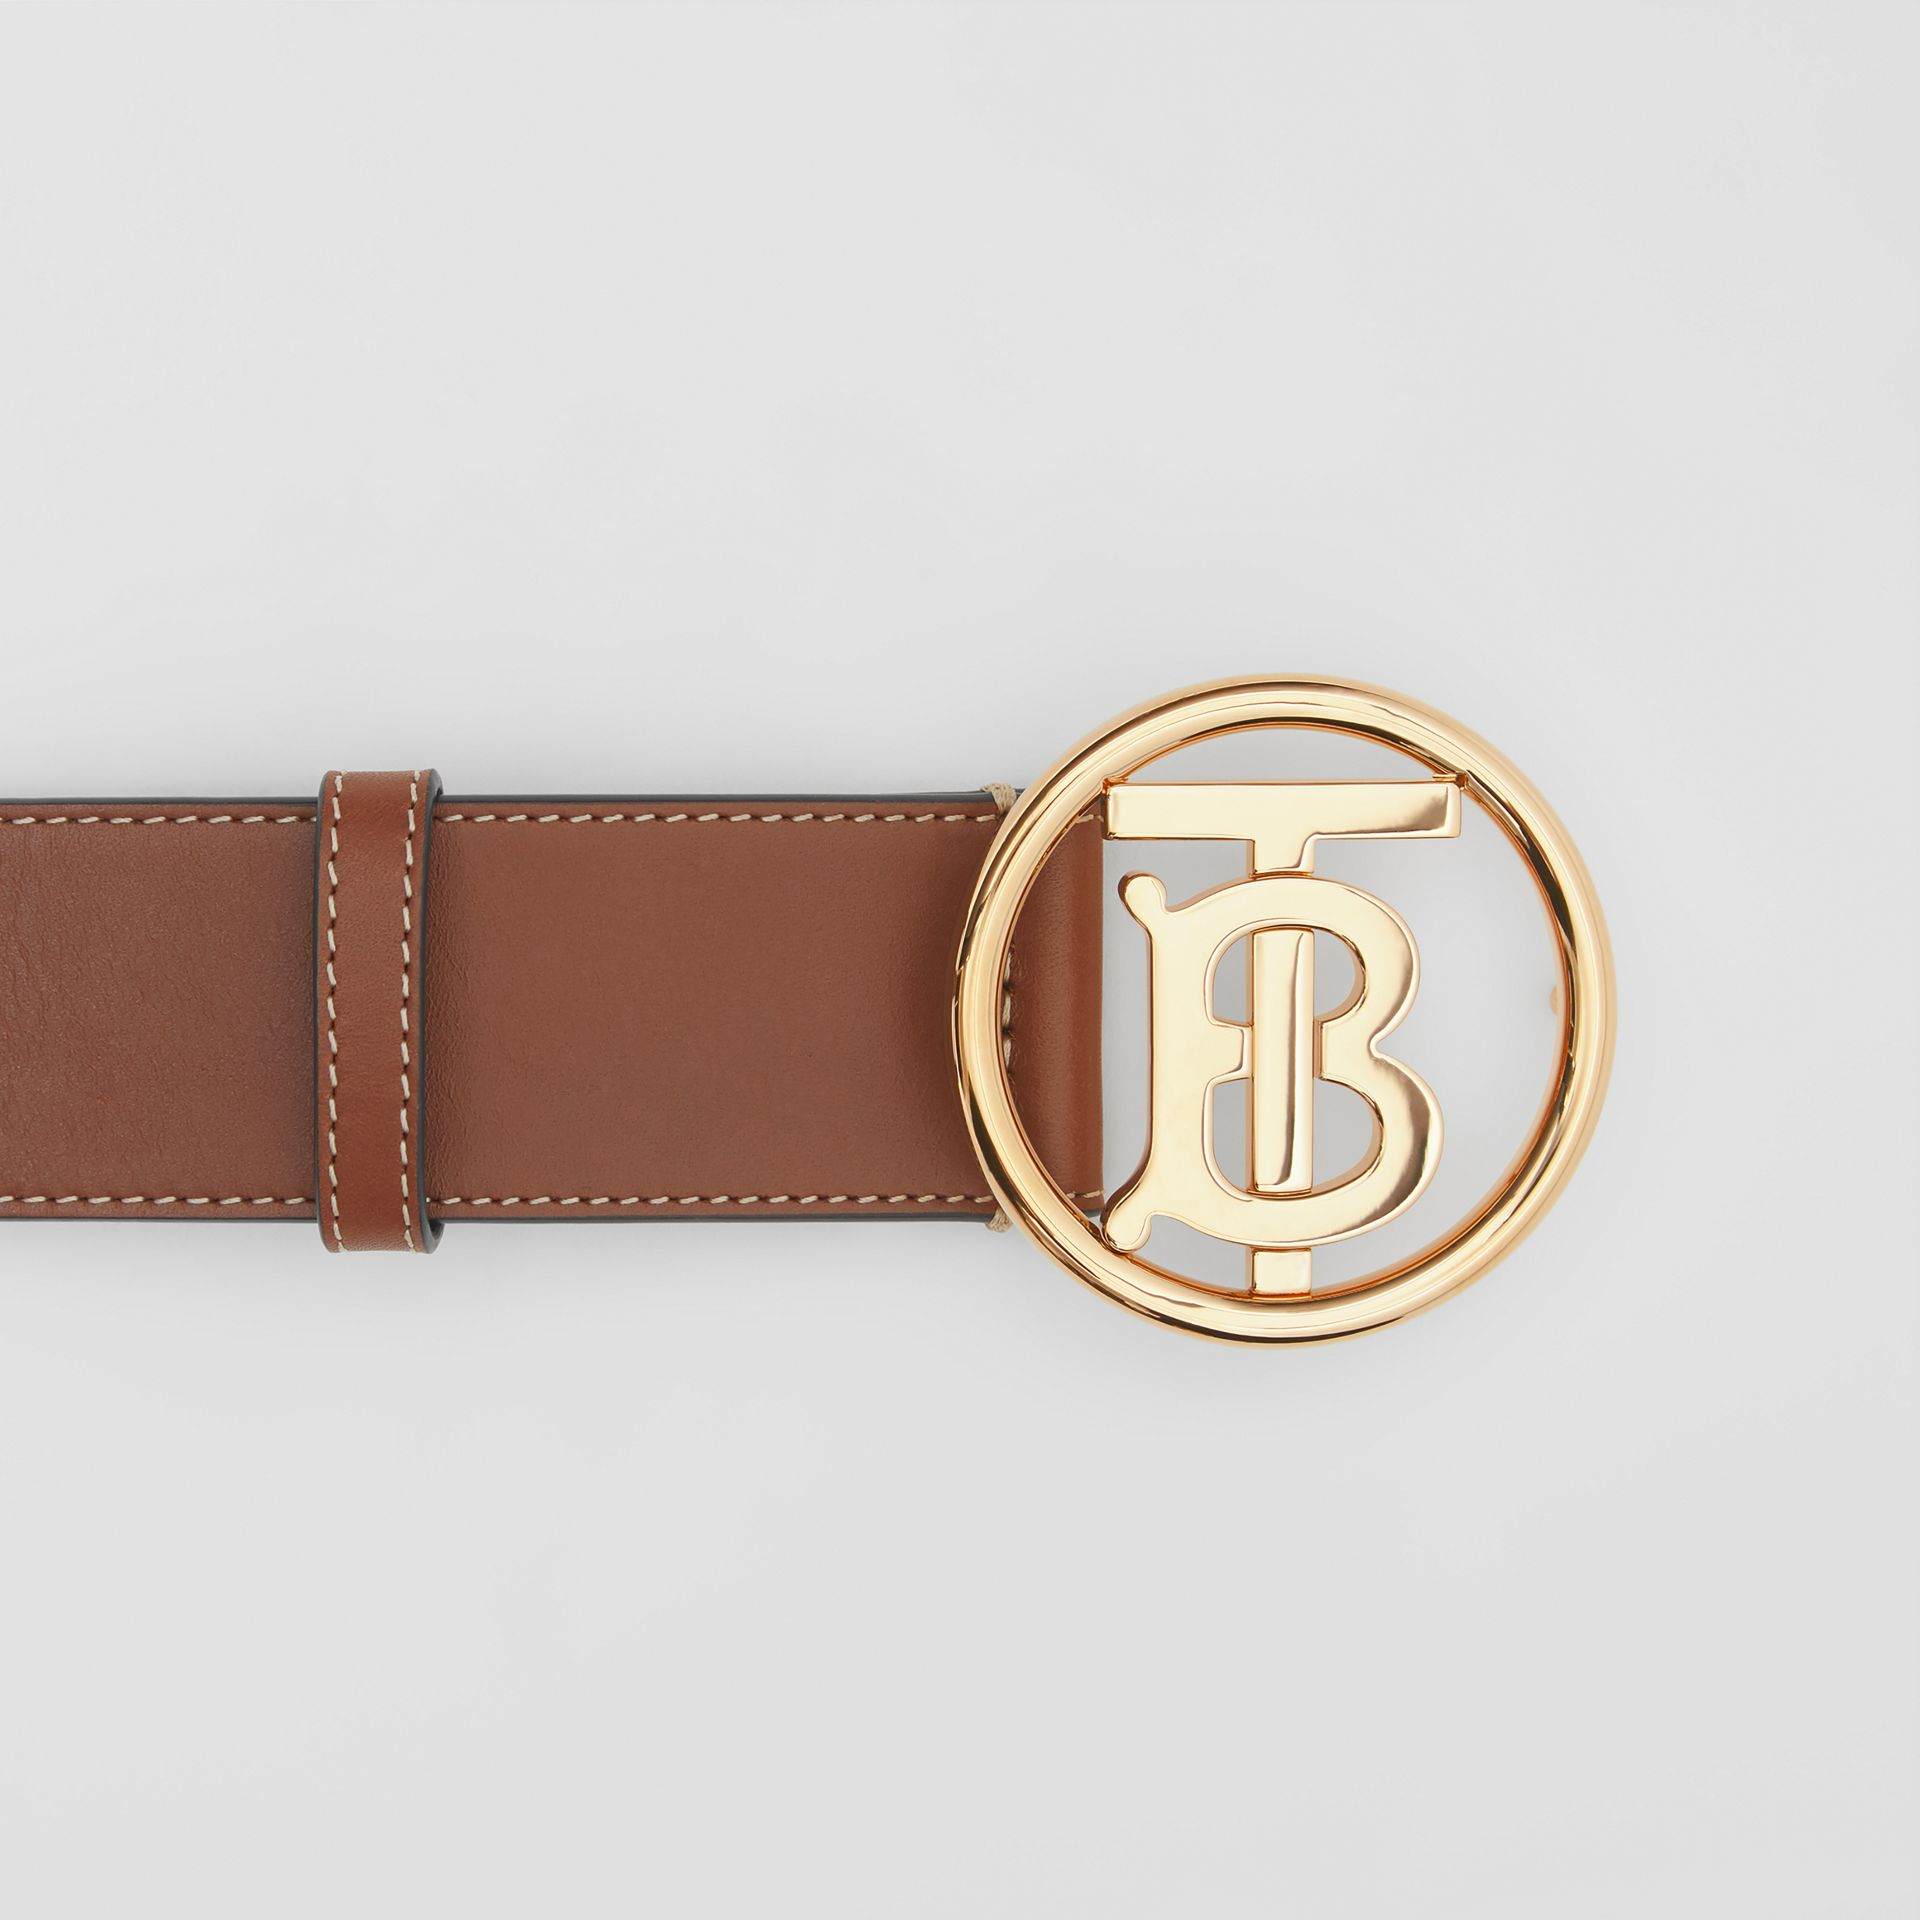 Monogram Motif Topstitched Leather Belt in Tan - Men | Burberry United Kingdom - gallery image 1